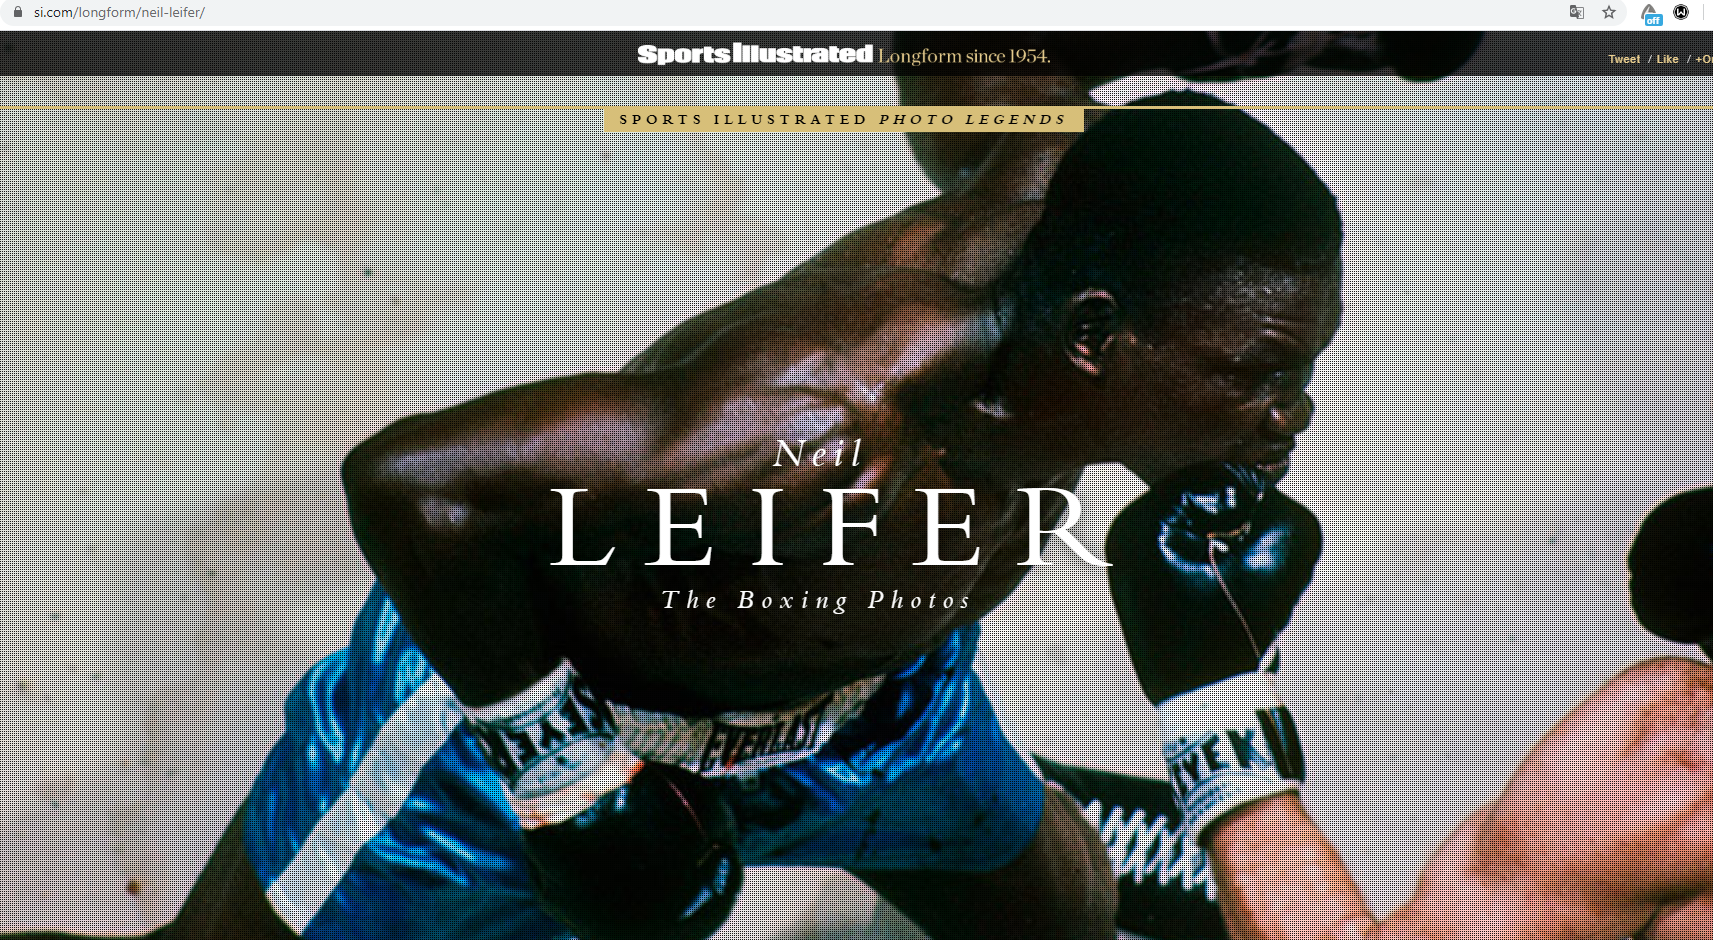 Neil Leifer: The Boxing Photos,